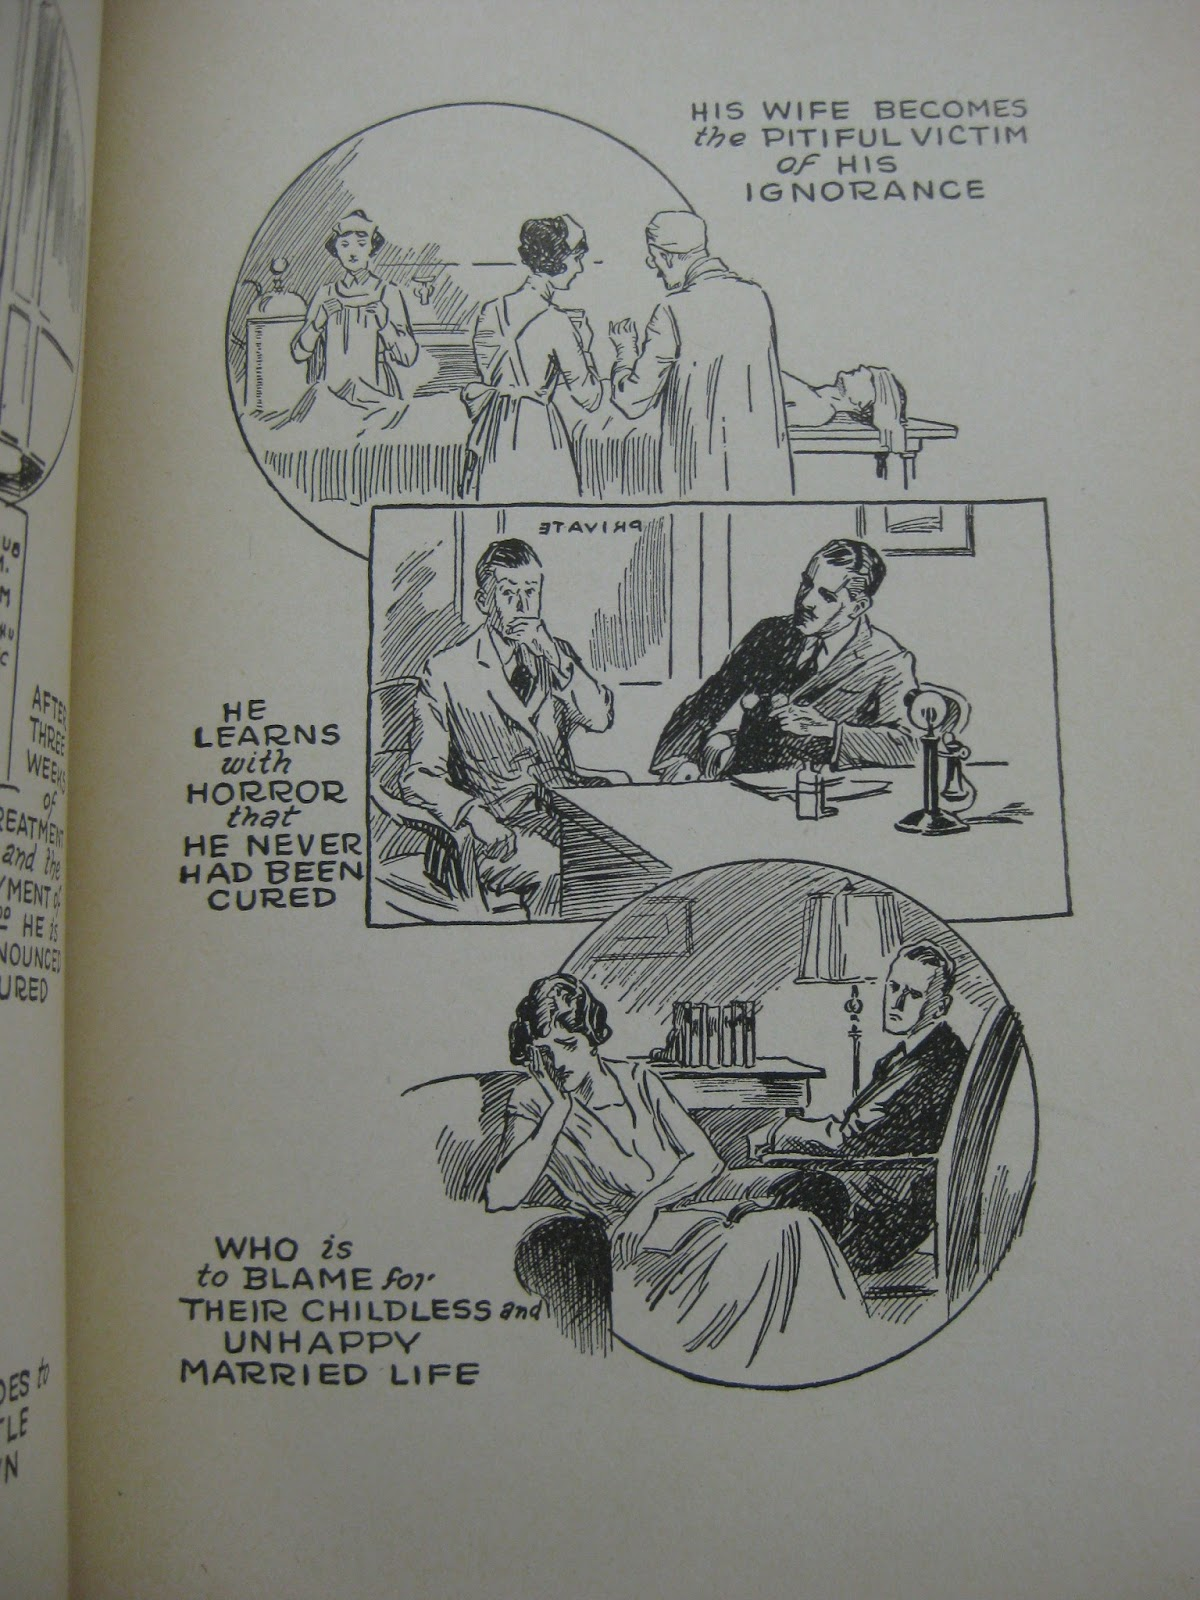 An illustration from Safe Counsel